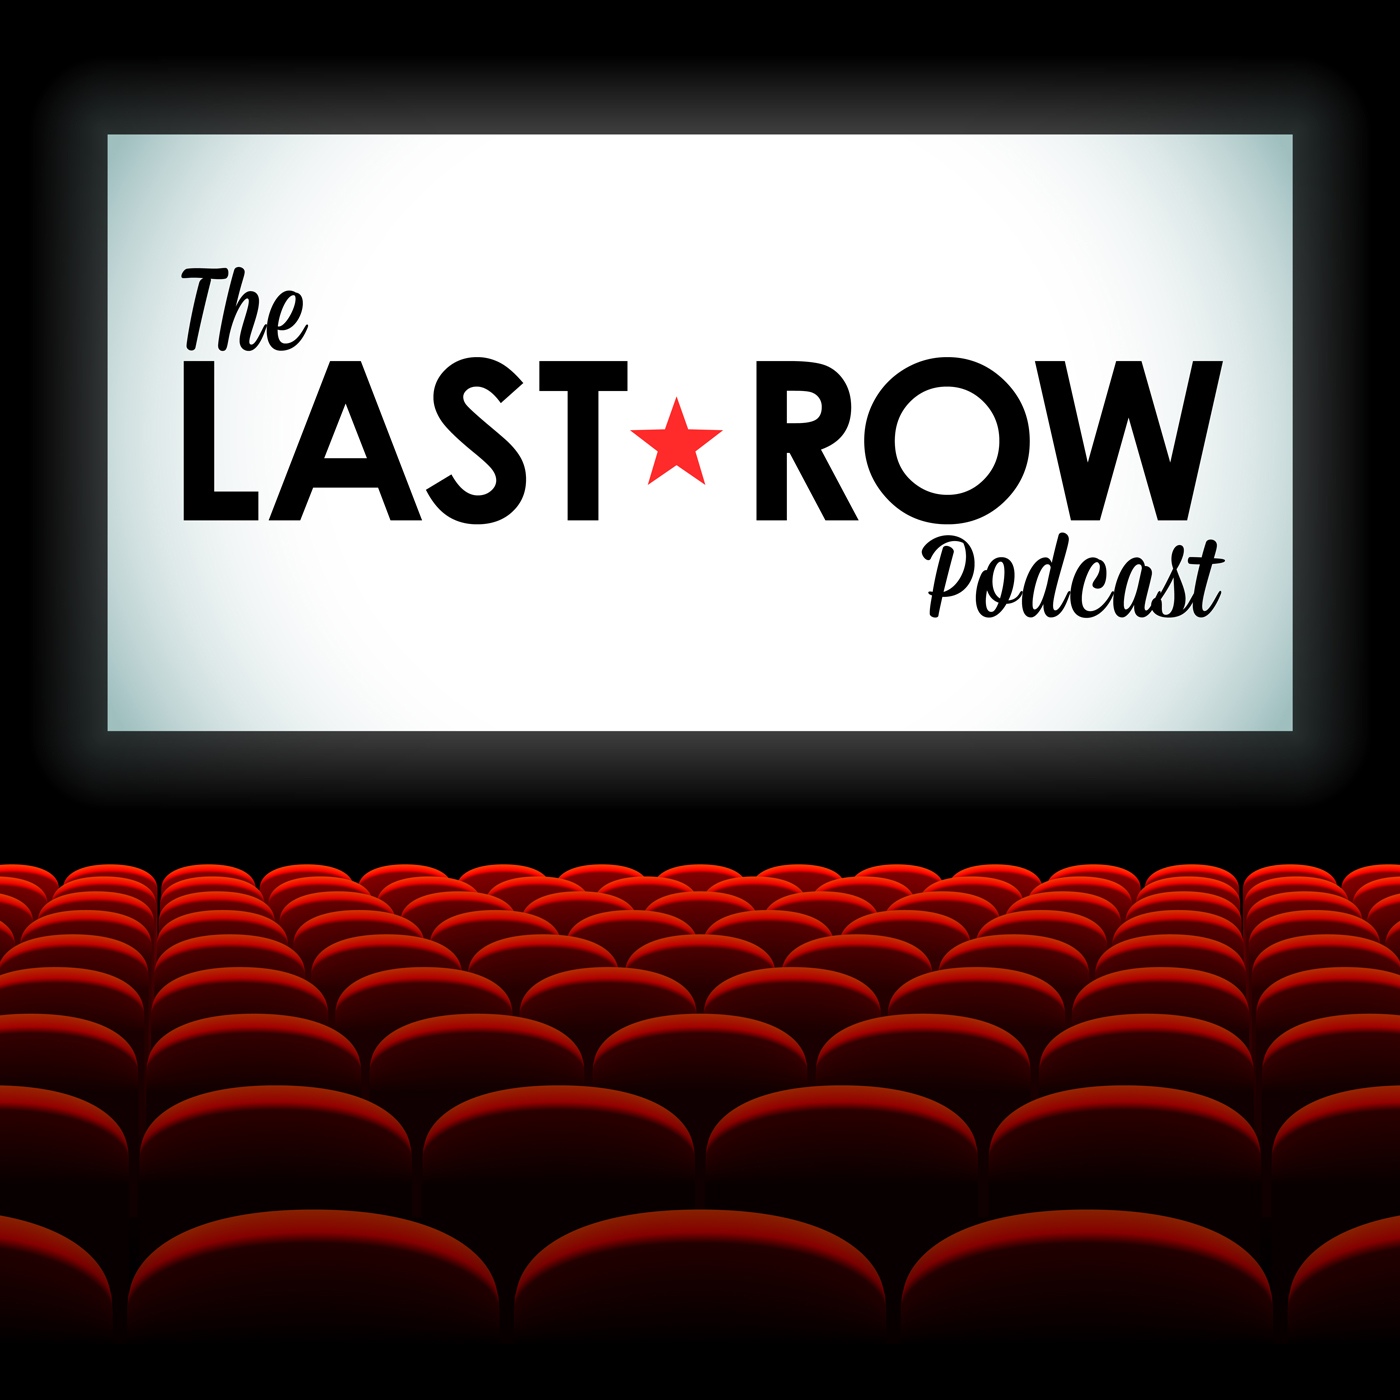 The Last Row: A Pretty Good Movie Podcast